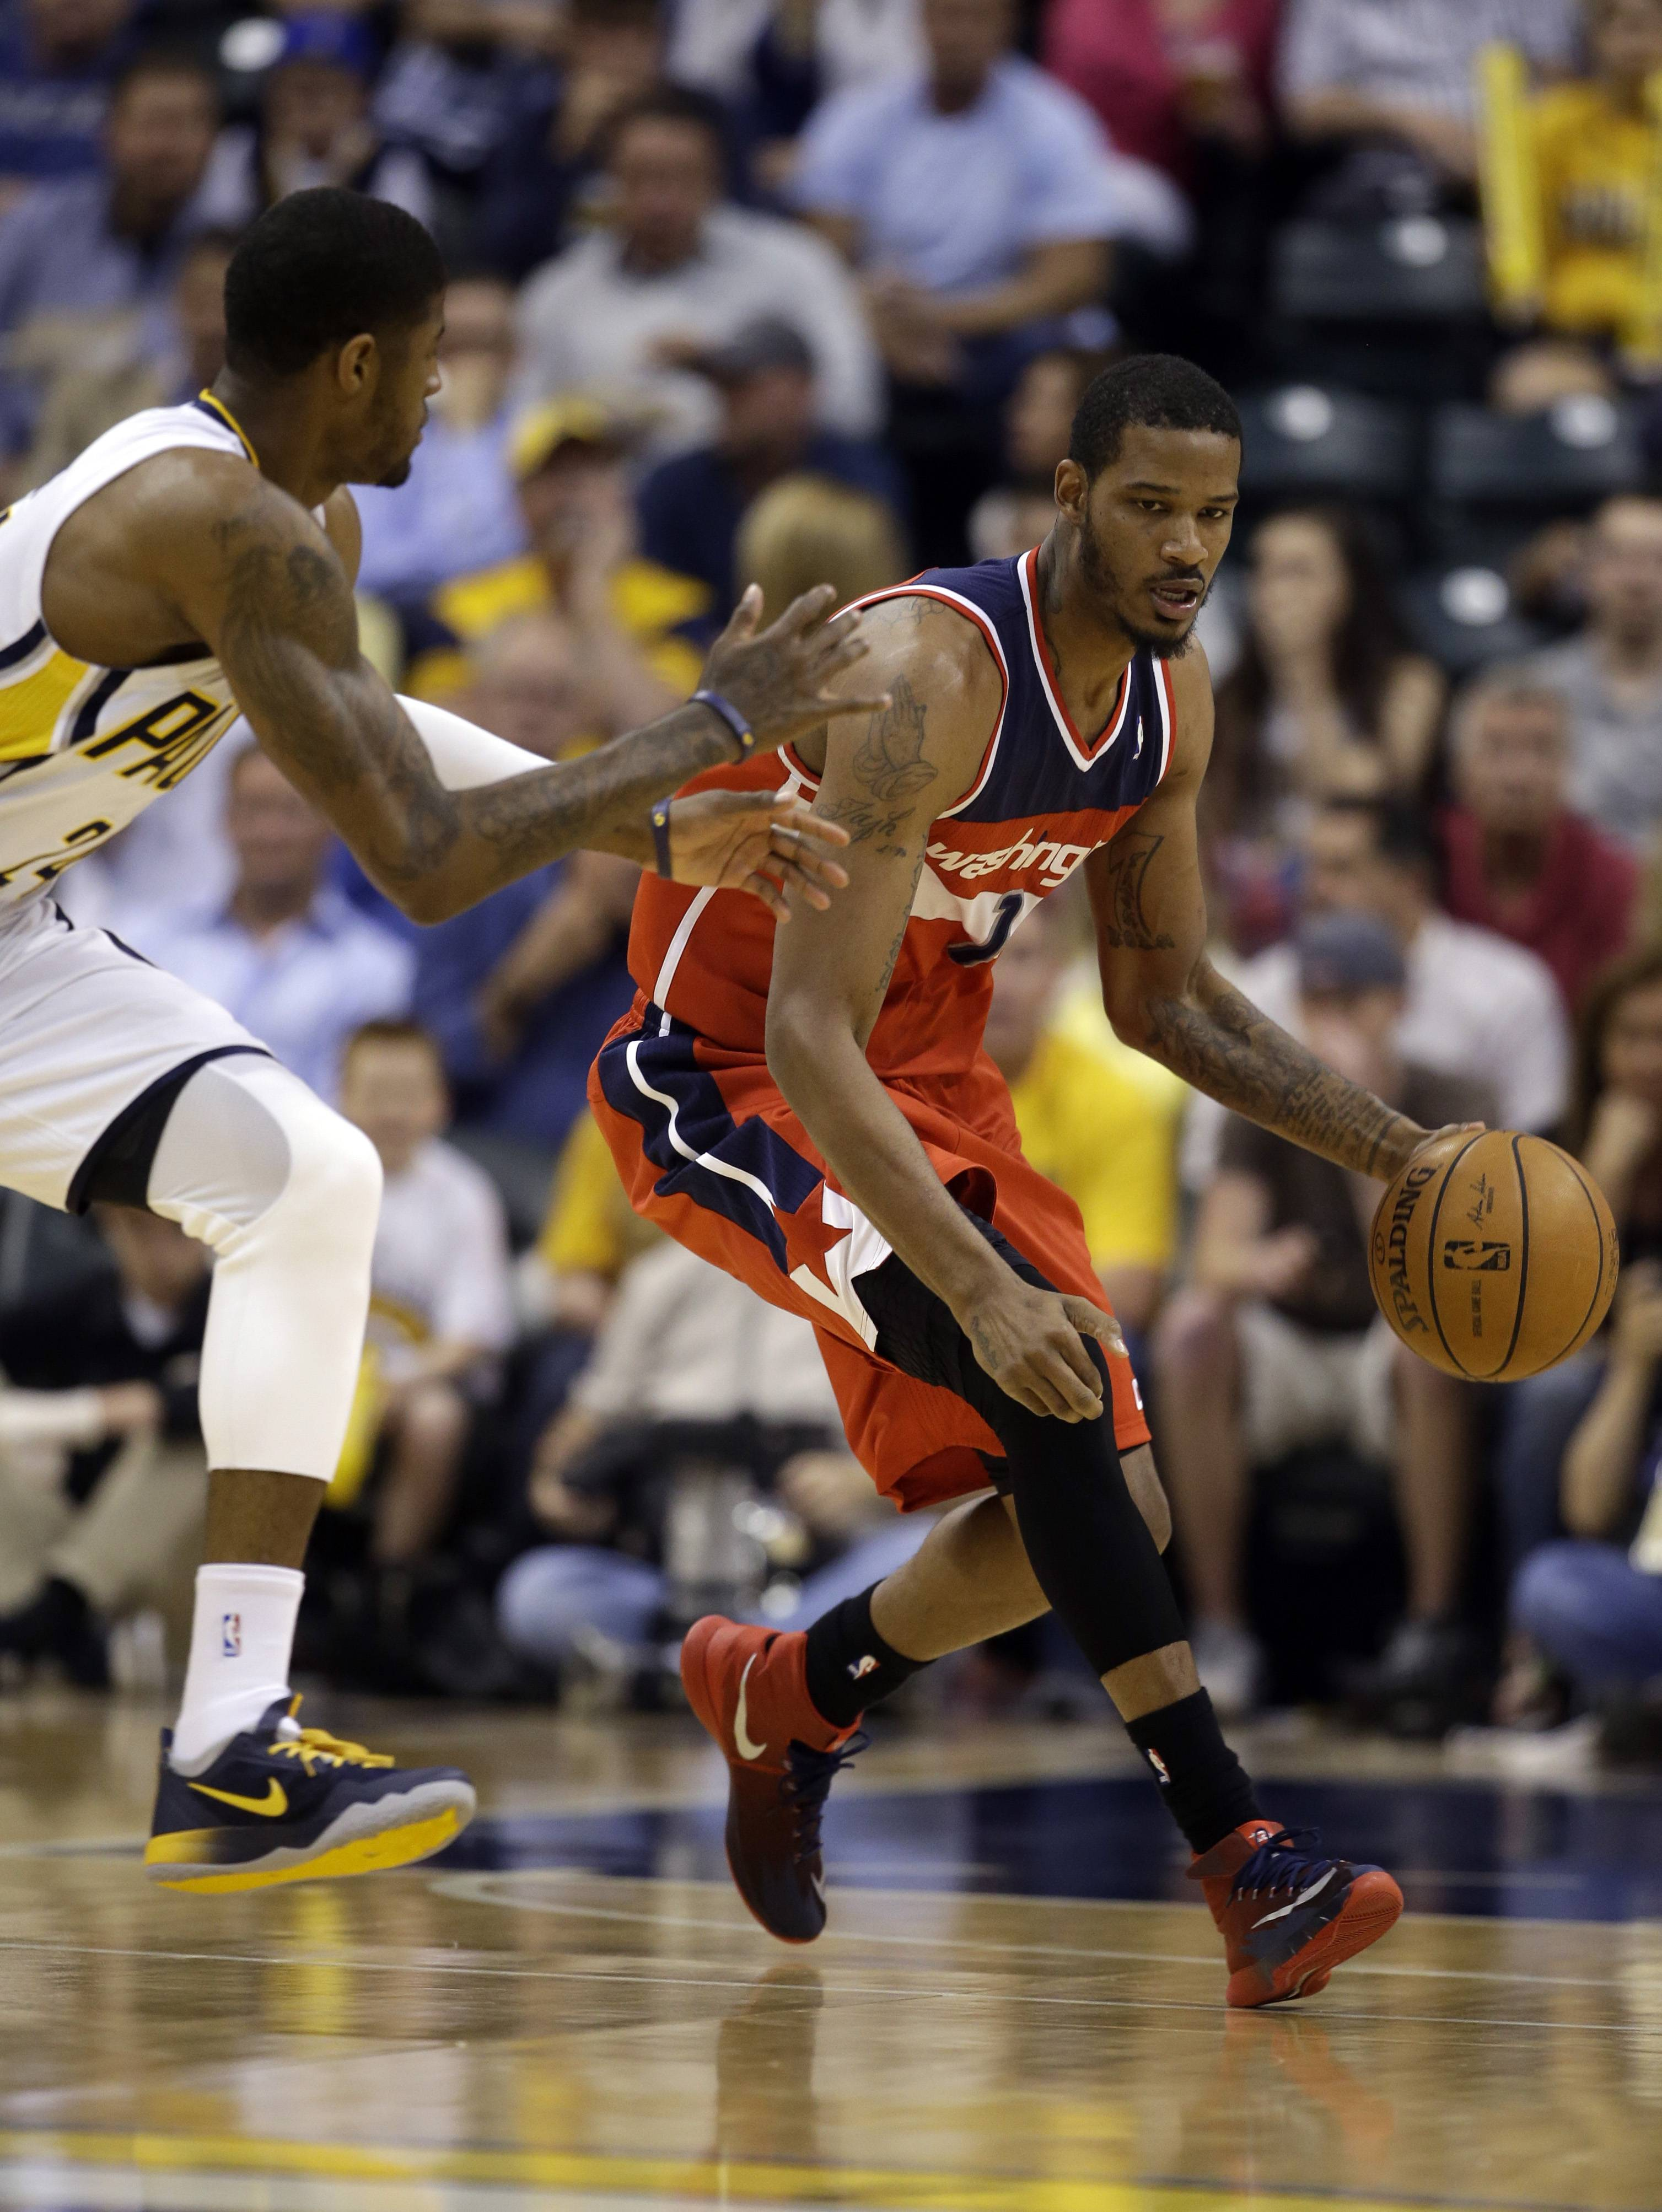 Washington Wizards forward Trevor Ariza, right, drives past Indiana Pacers forward Paul George during the first half of game 5 of the Eastern Conference semifinal NBA basketball playoff series Tuesday, May 13, 2014, in Indianapolis. (AP Photo/Darron Cummings)